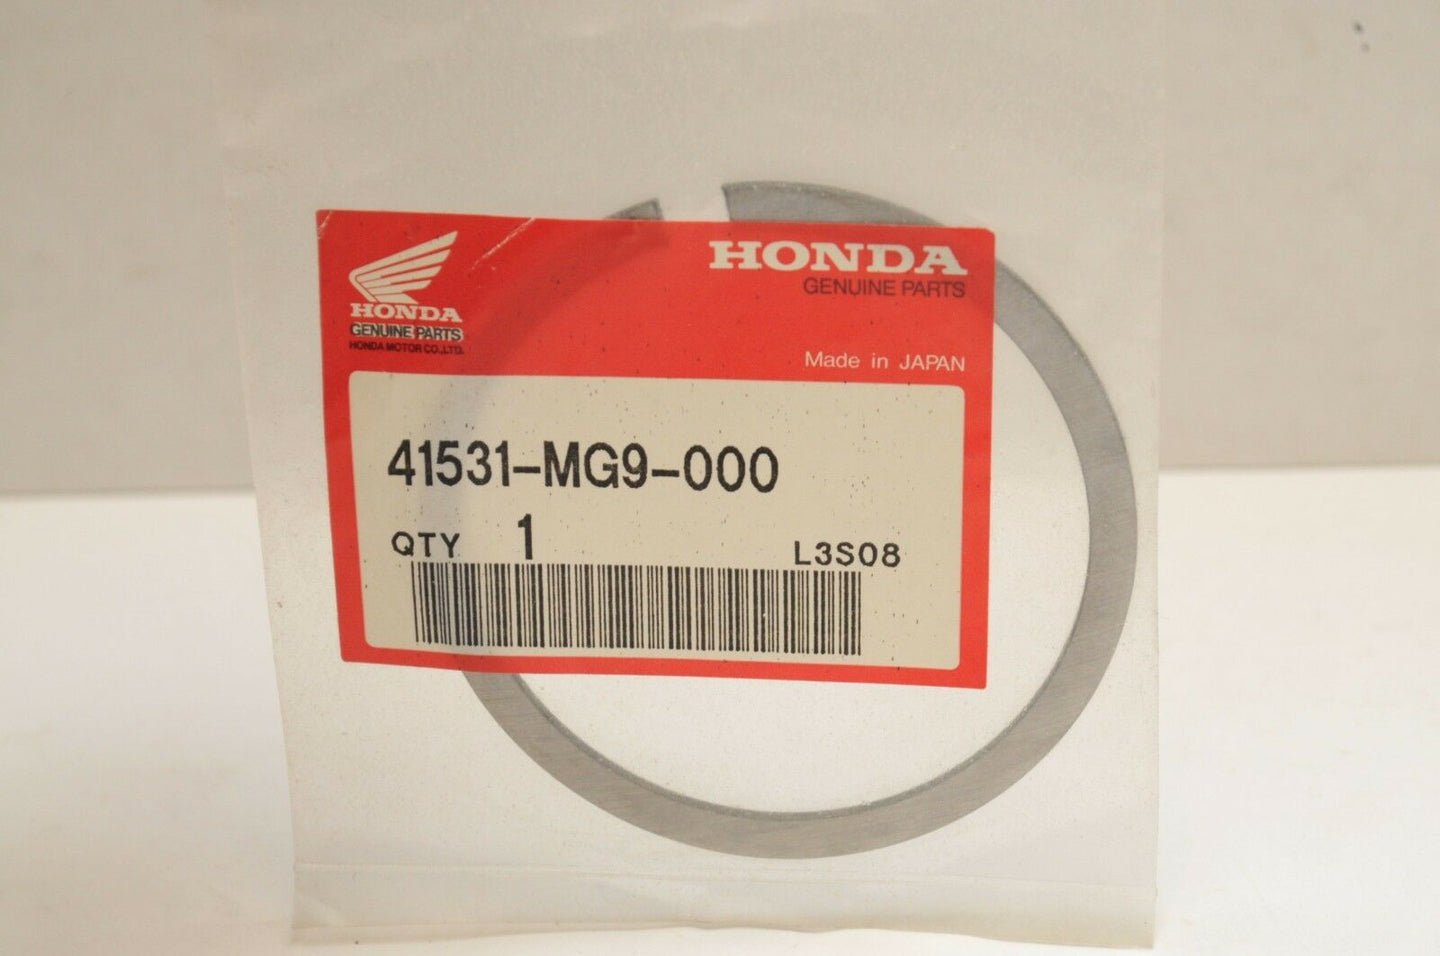 NEW NOS OEM HONDA 41531-MG9-000 SPACER,RING GEAR B(1.88) GL1200 GL1500 VTX1300++